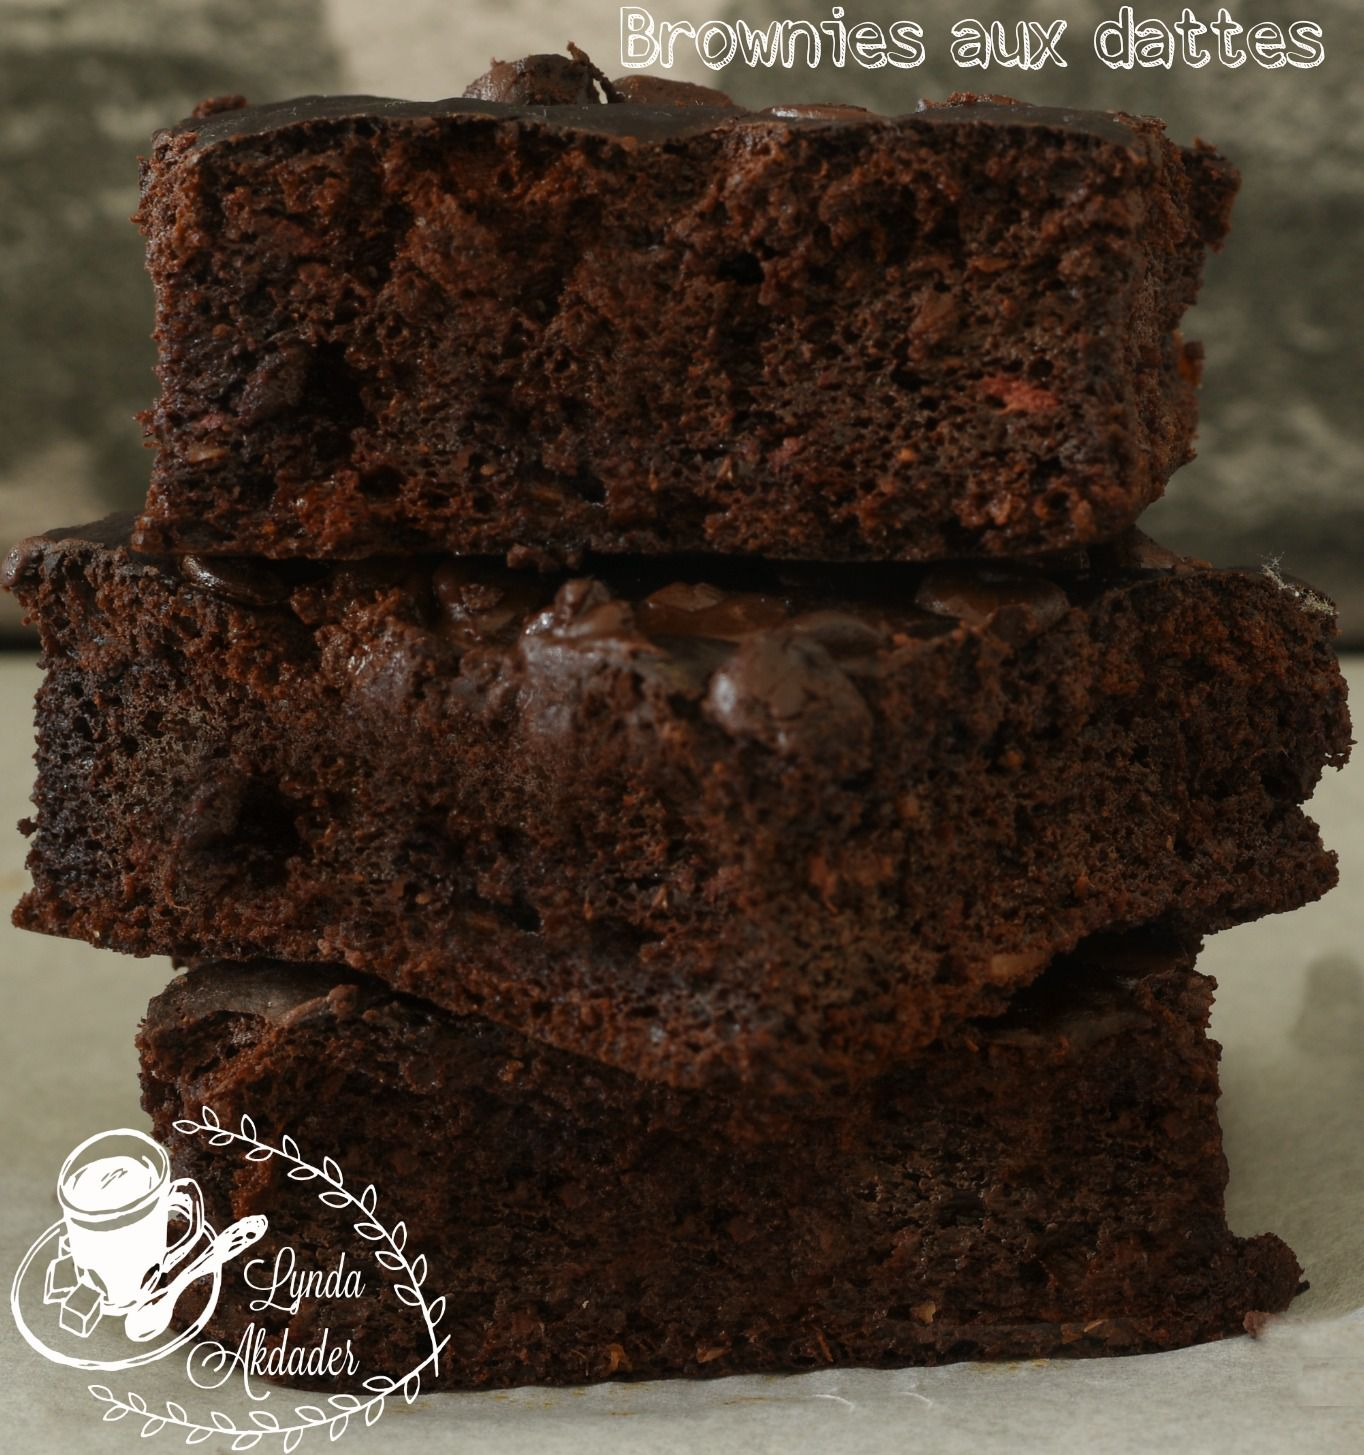 Brownies aux dattes